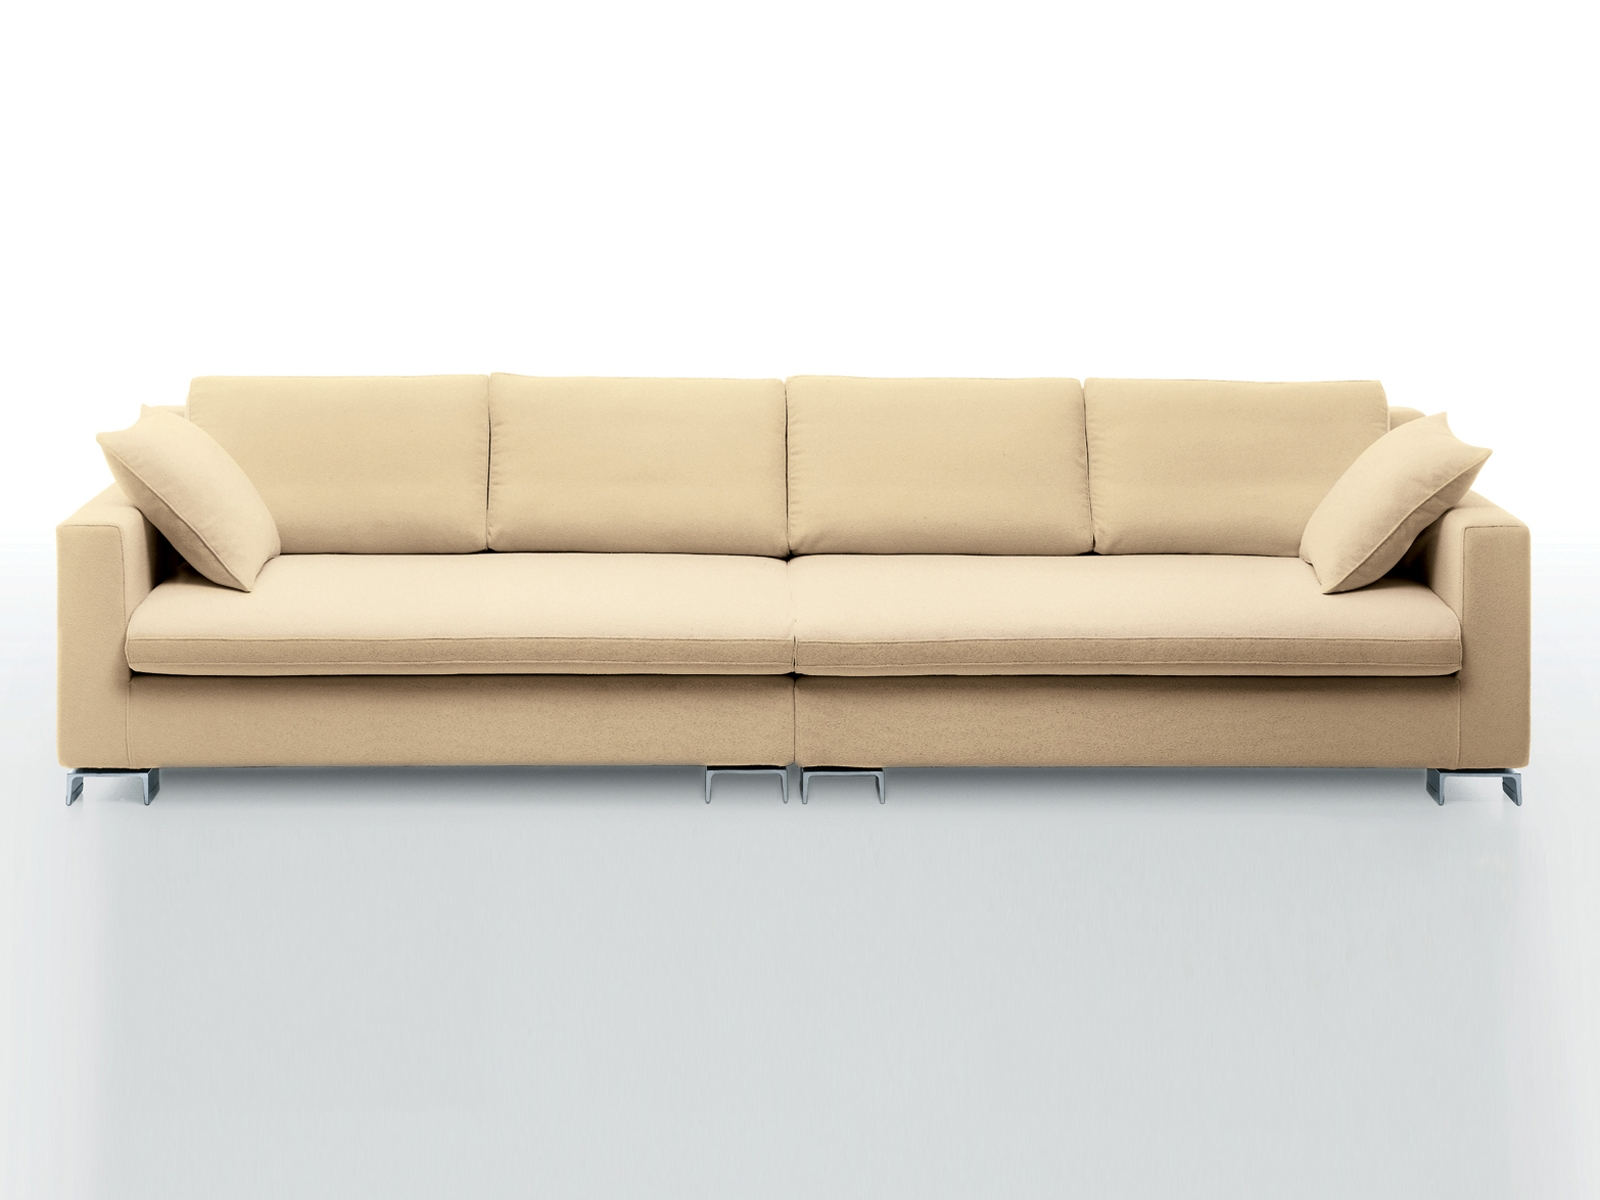 Design 4 Seater Sofas Archiproducts Pertaining To Four Seat Sofas (Image 7 of 15)